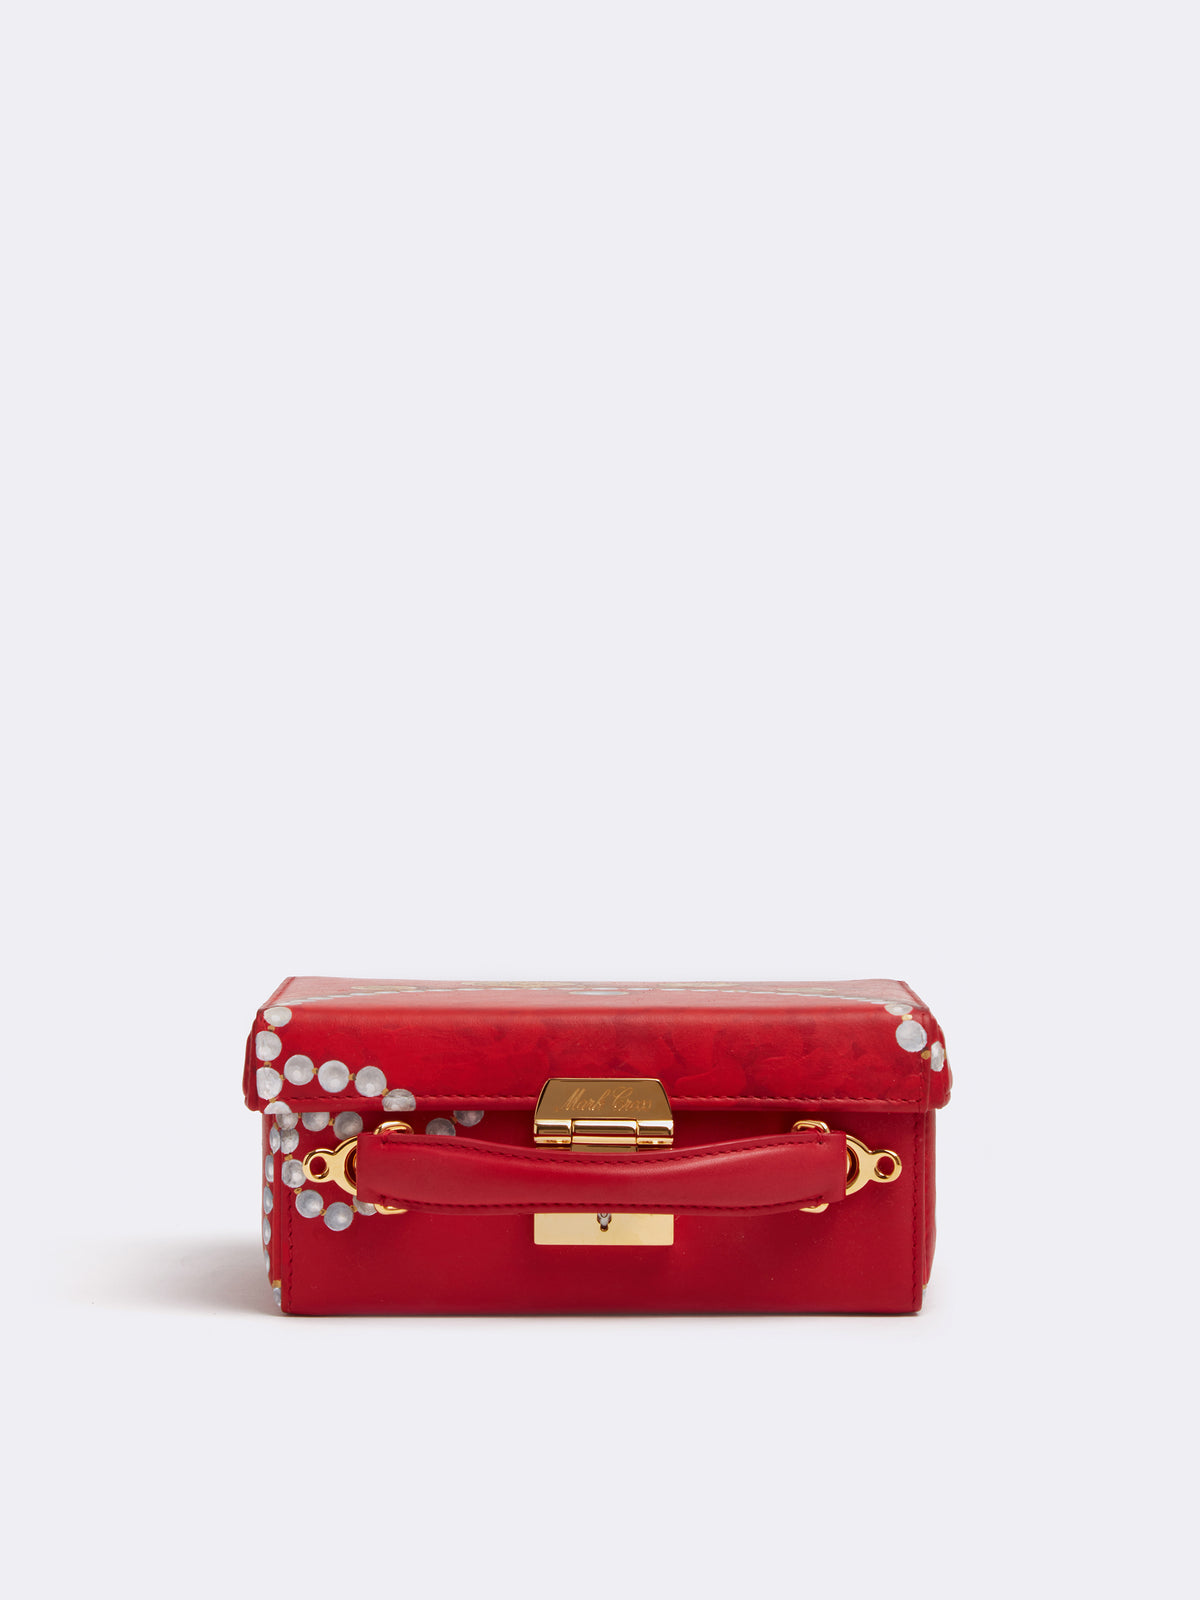 Sophie Matisse x Mark Cross Grace Small Leather Box Bag Smooth Calf MC Red / Pearl Side